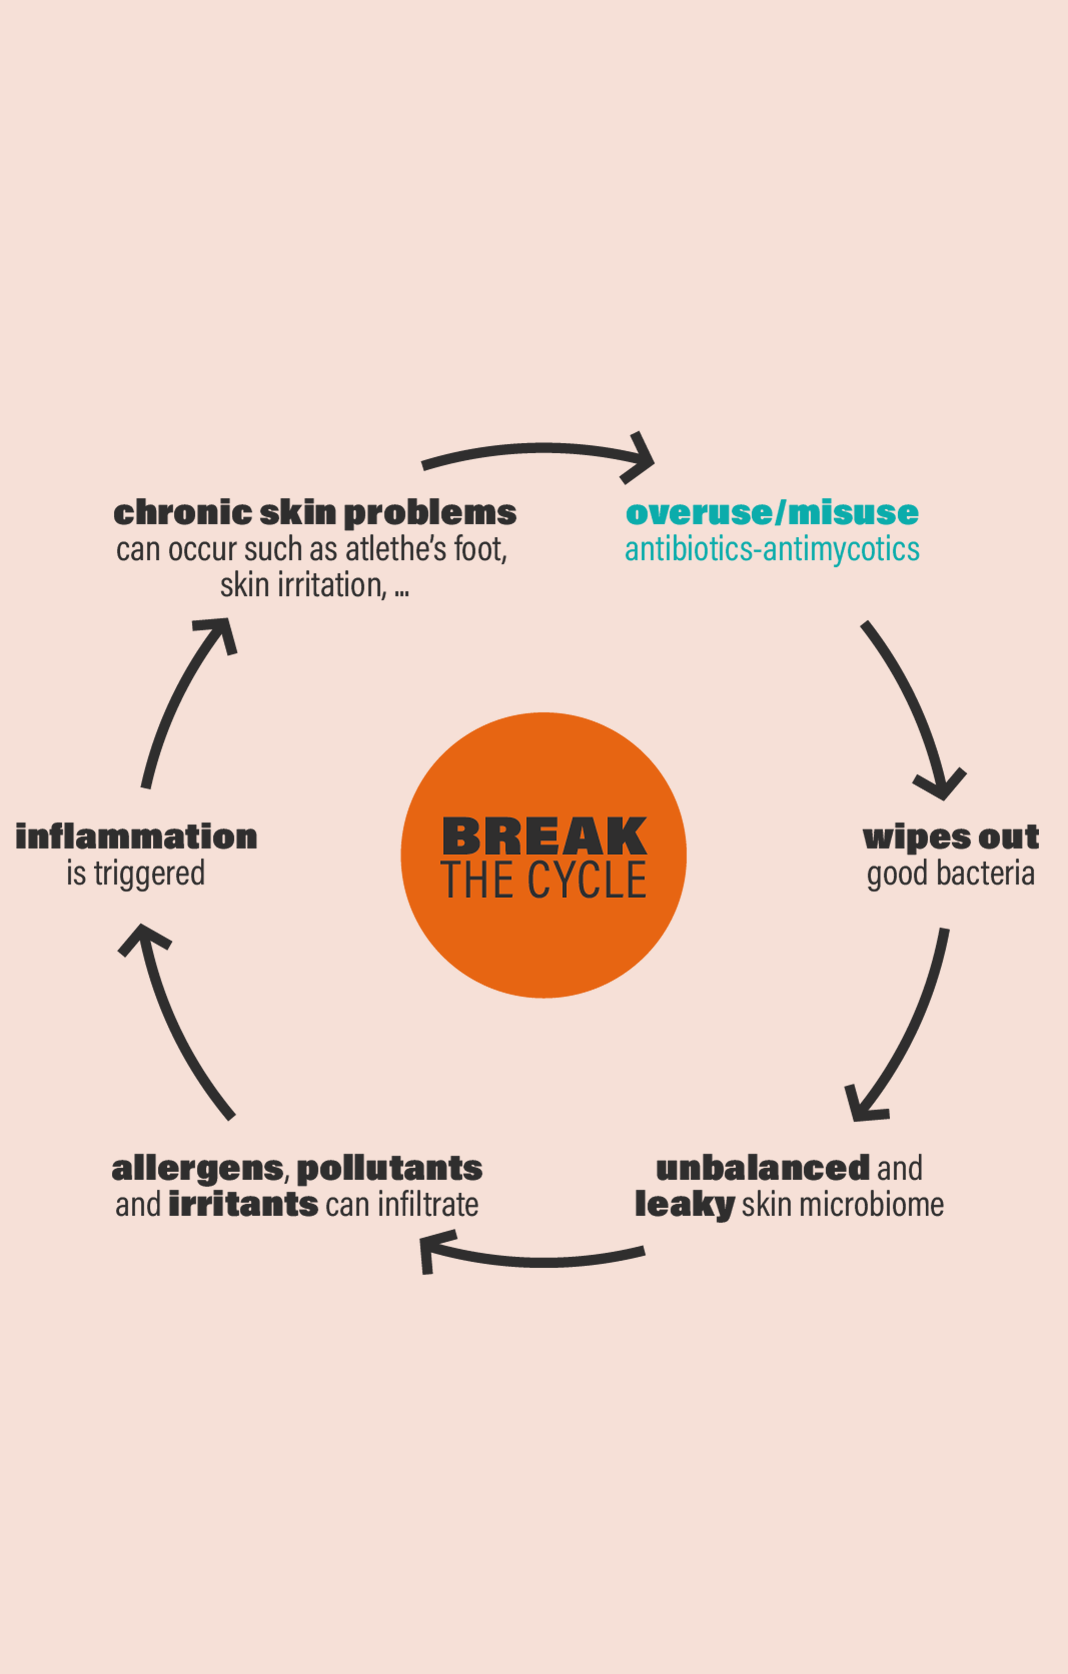 Break the cycle@4x FNG